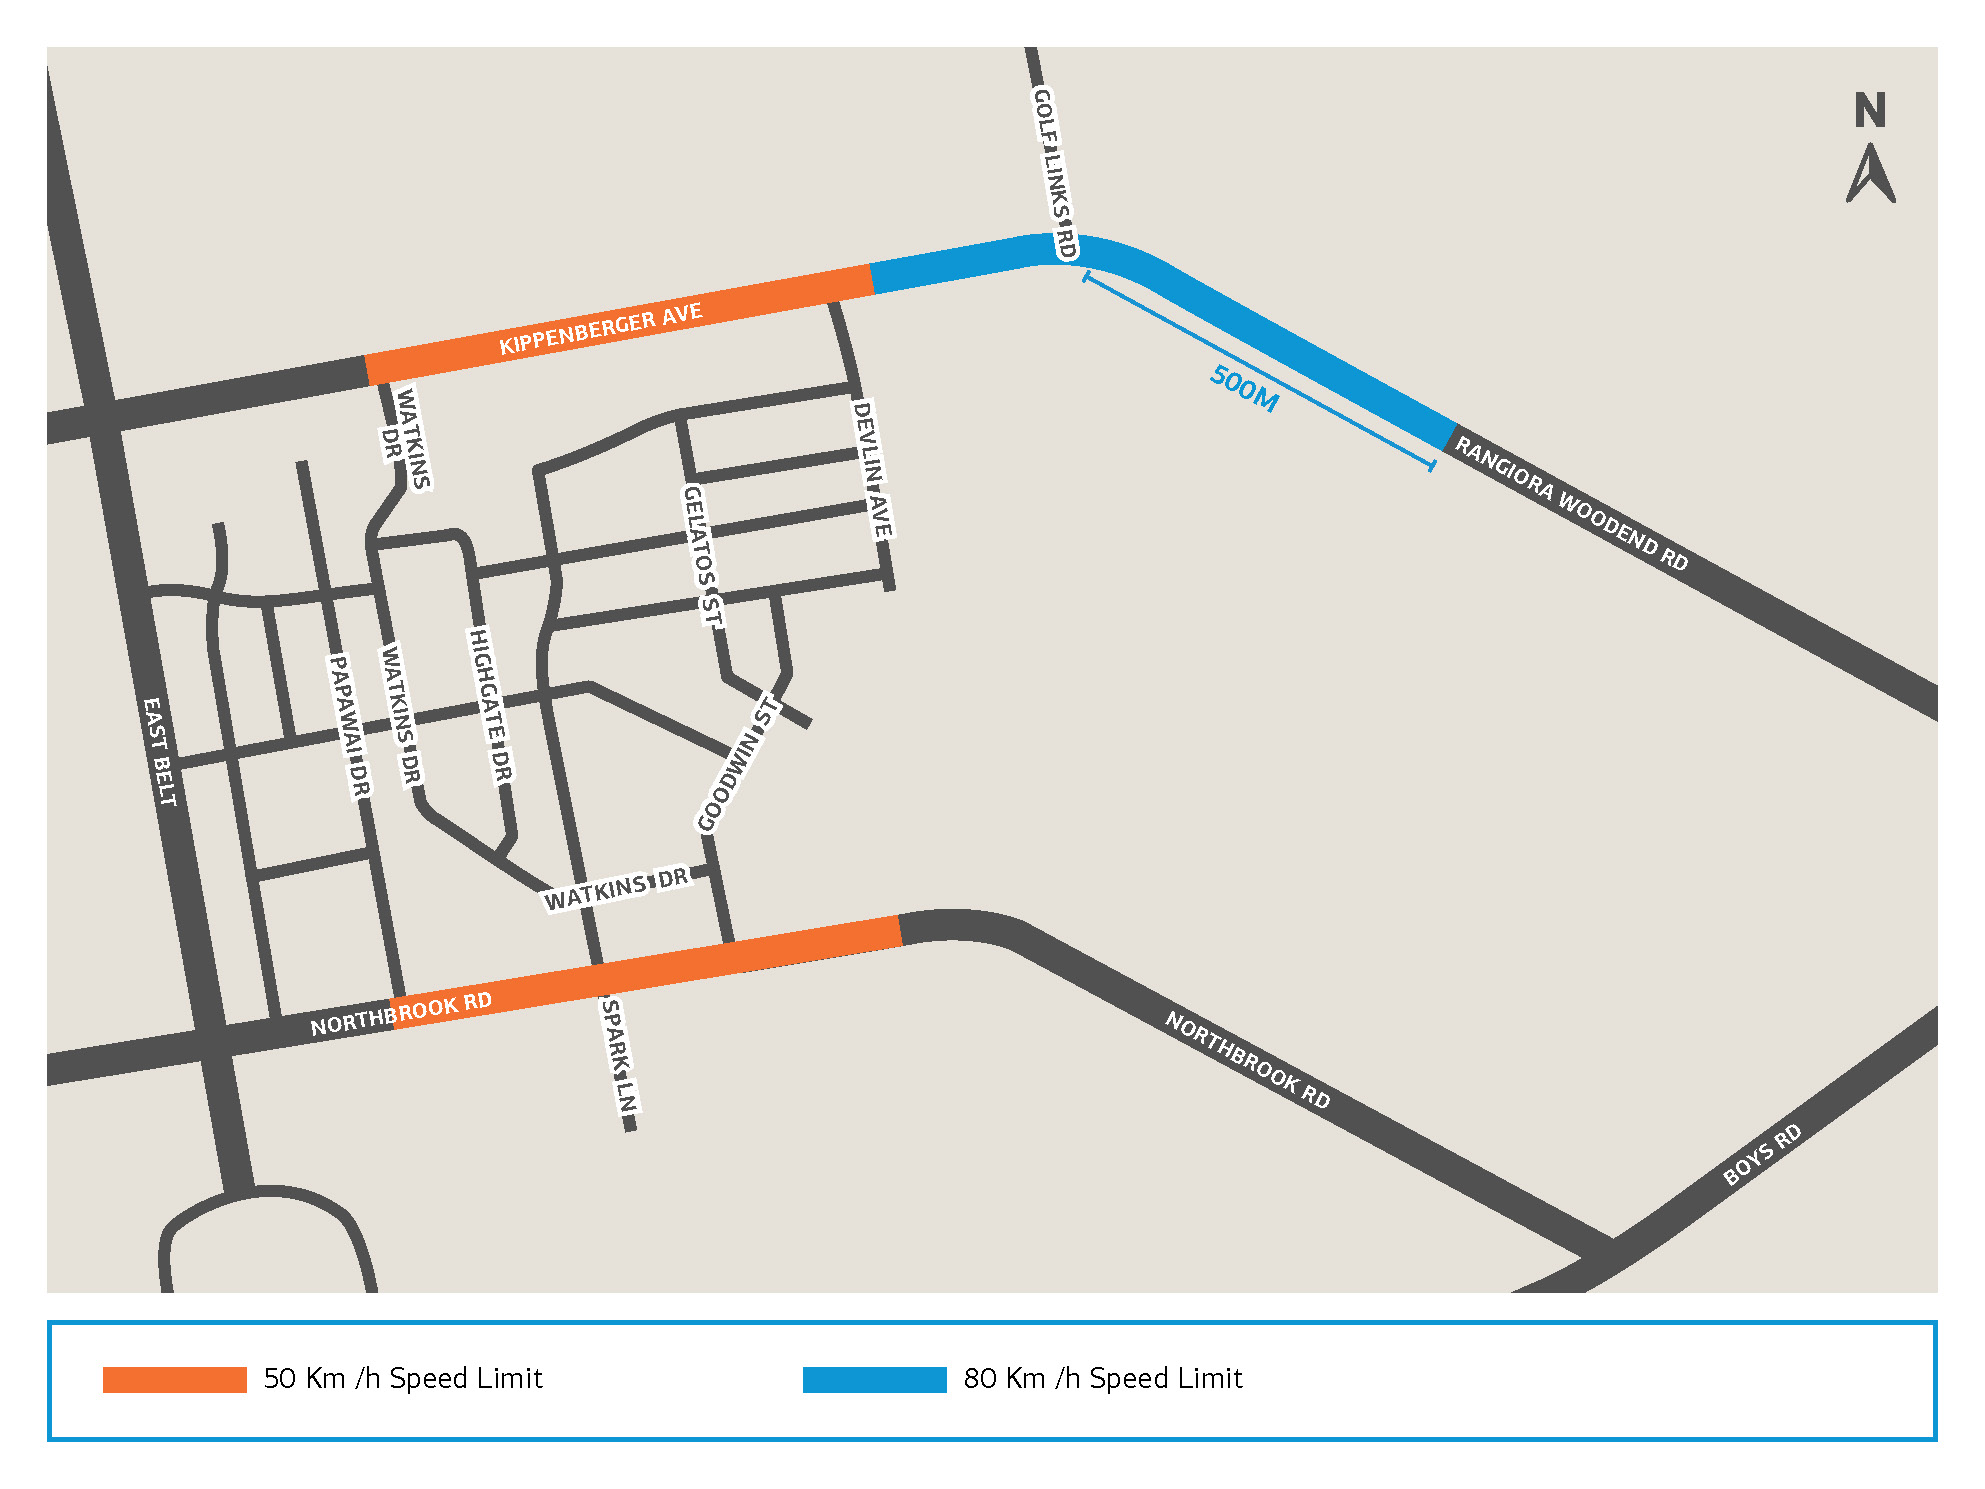 Map showing changed speed limits in Rangiora